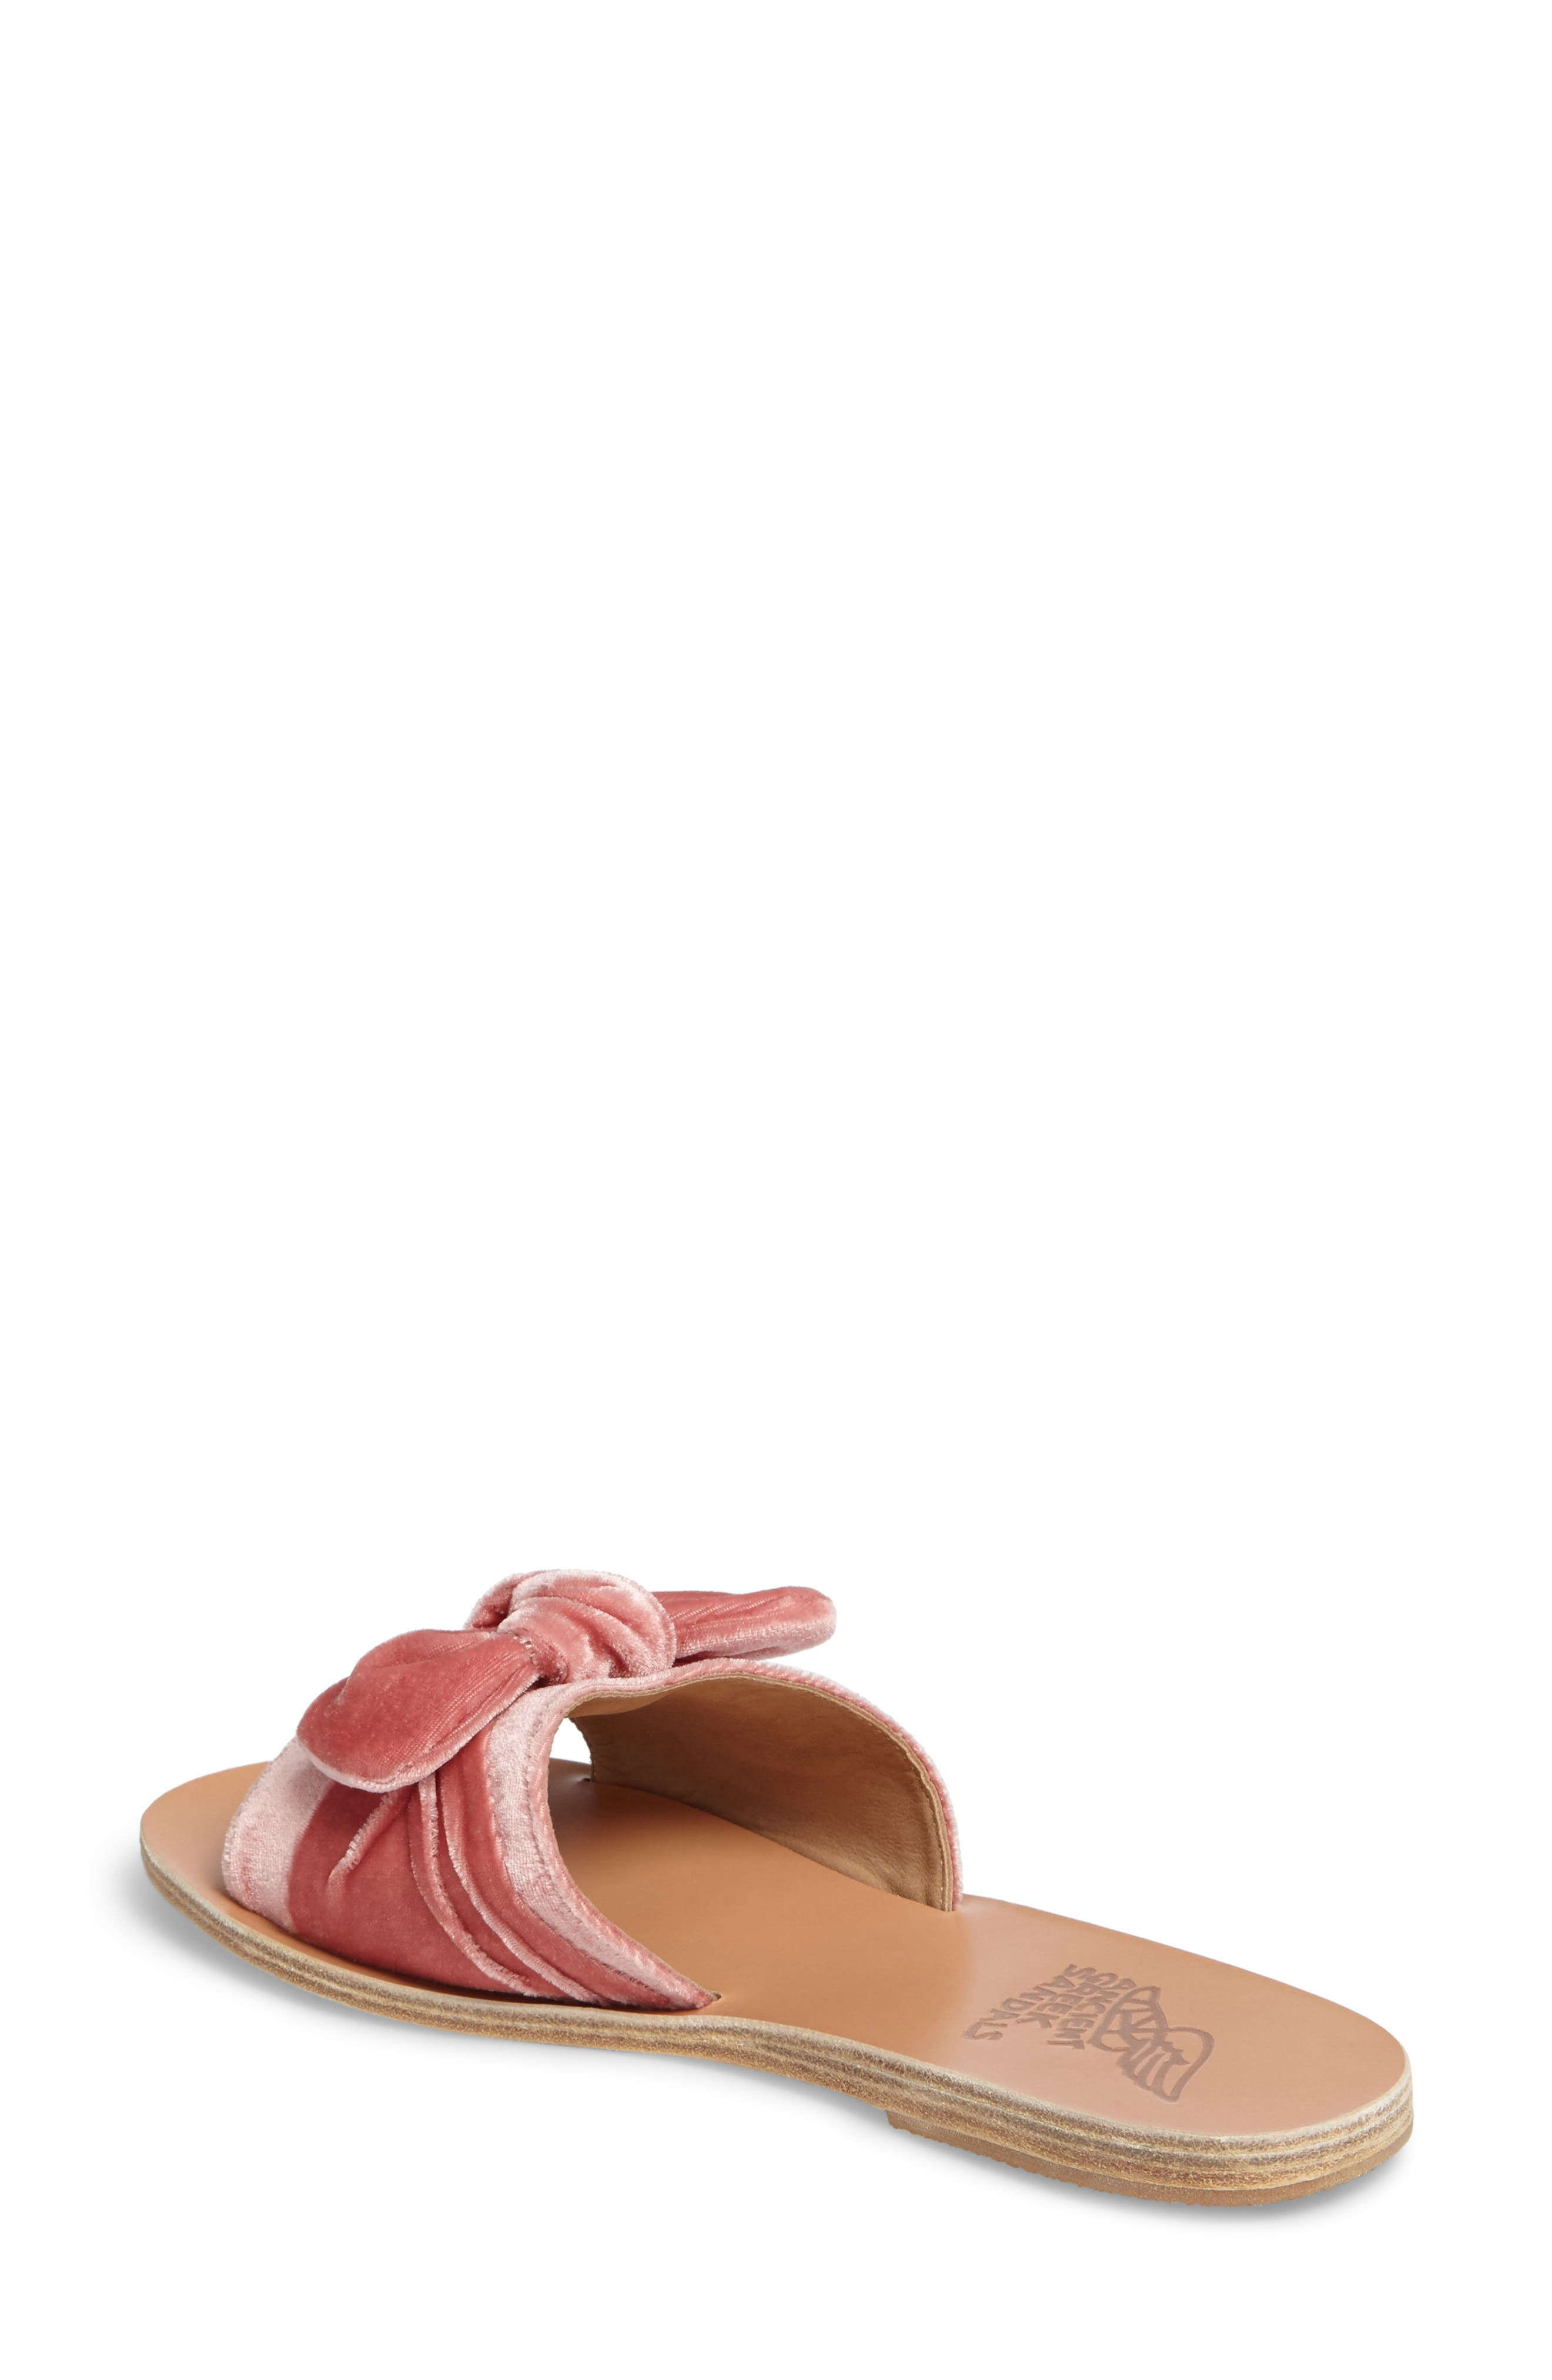 Taygete Bow Slide Sandal,                             Alternate thumbnail 7, color,